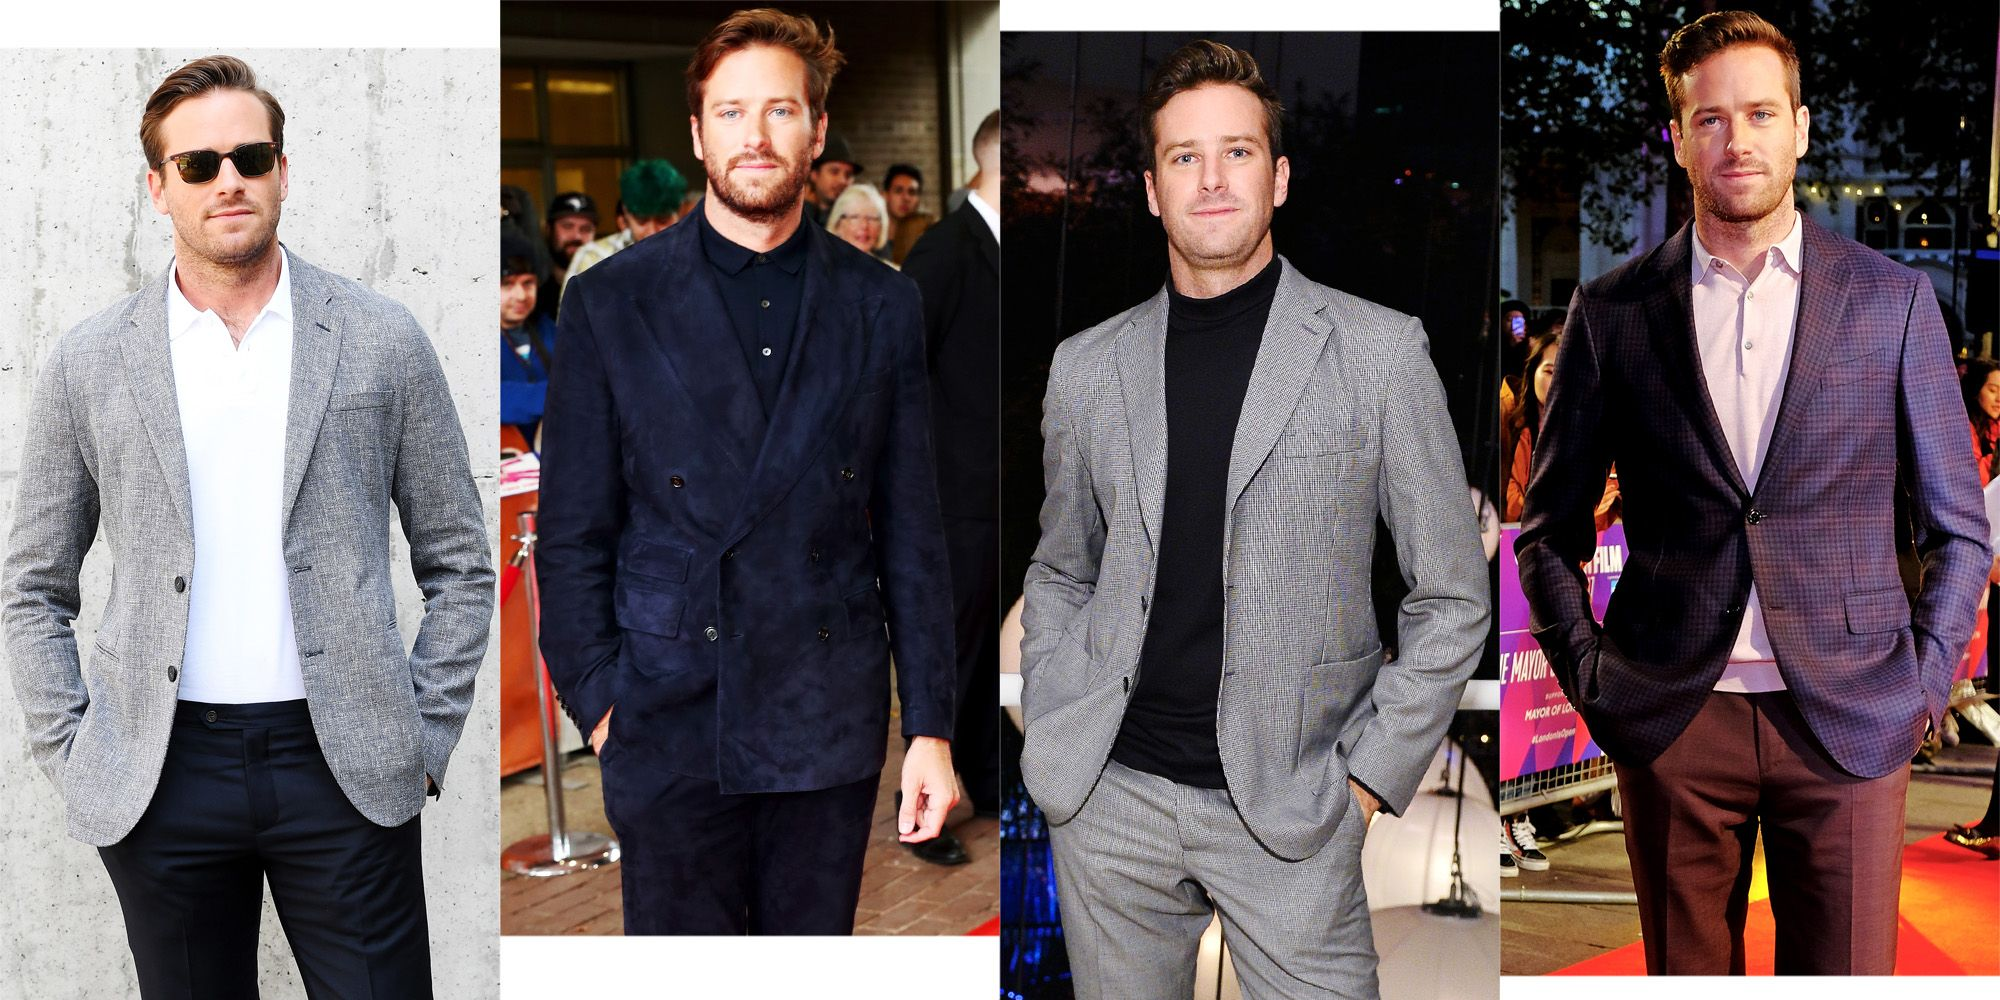 The Suited-Up Style Move You Should Steal From Armie Hammer